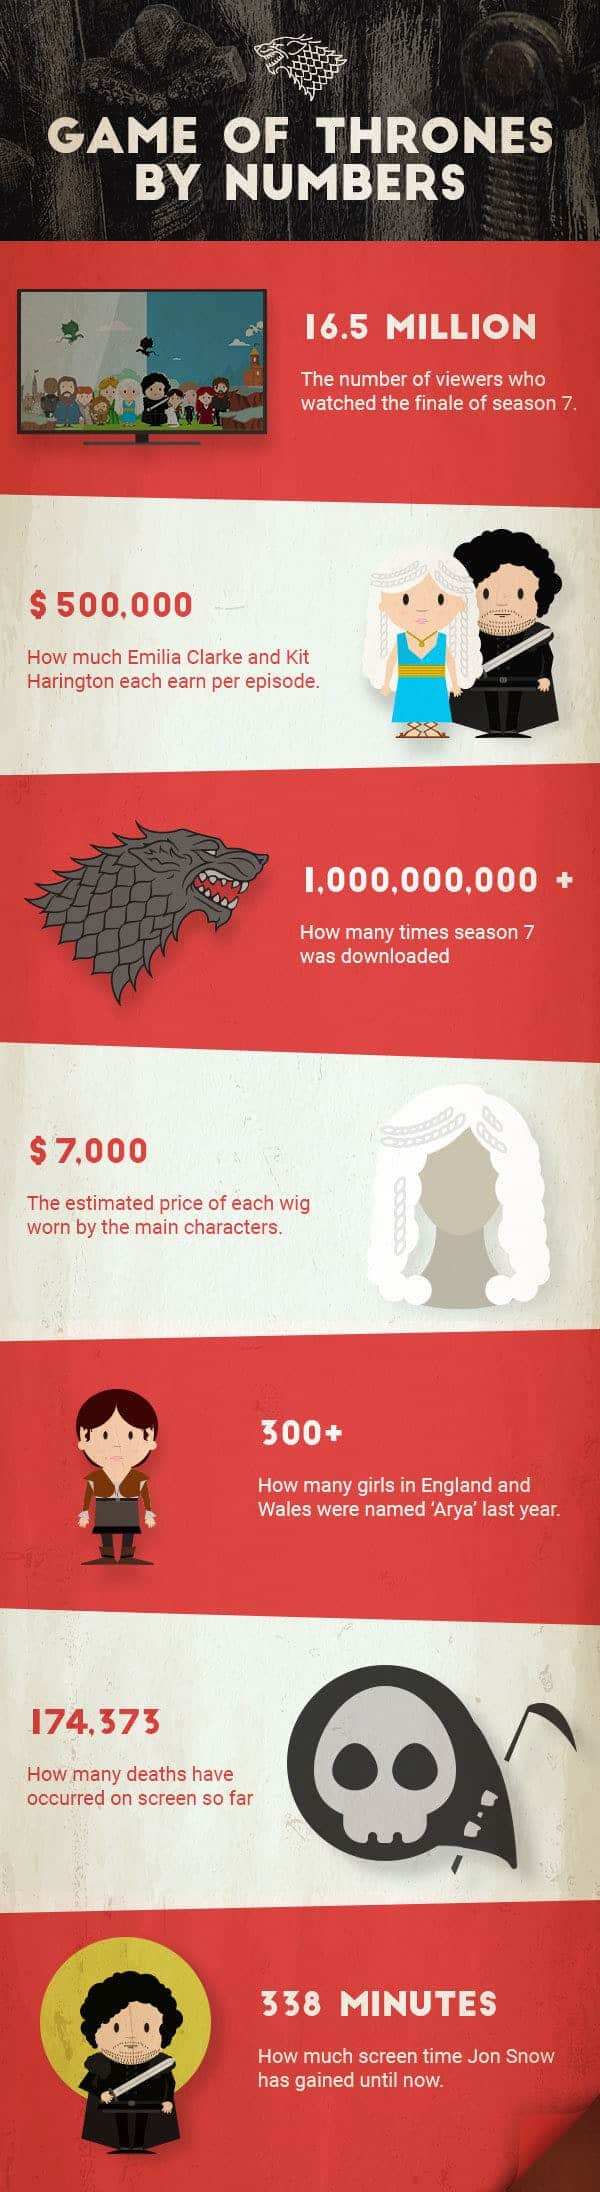 Game-of-Thrones-By-Numbers